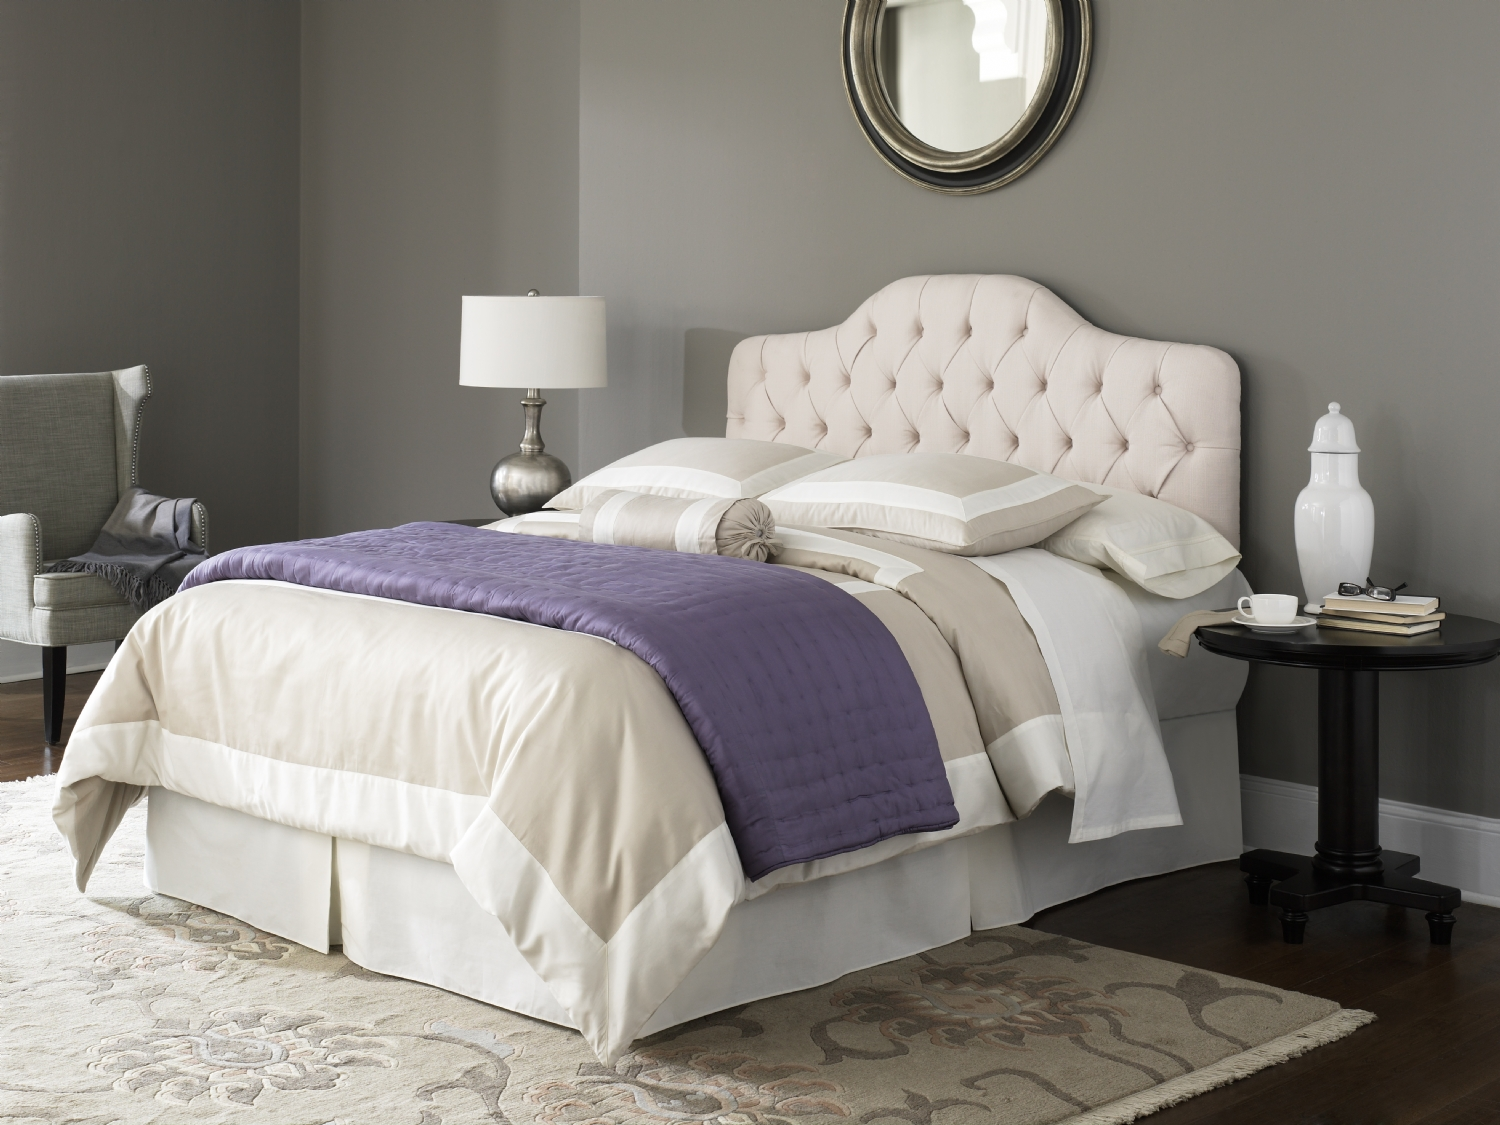 Martinique Headboard for Adjustable Bed Base Designer Series